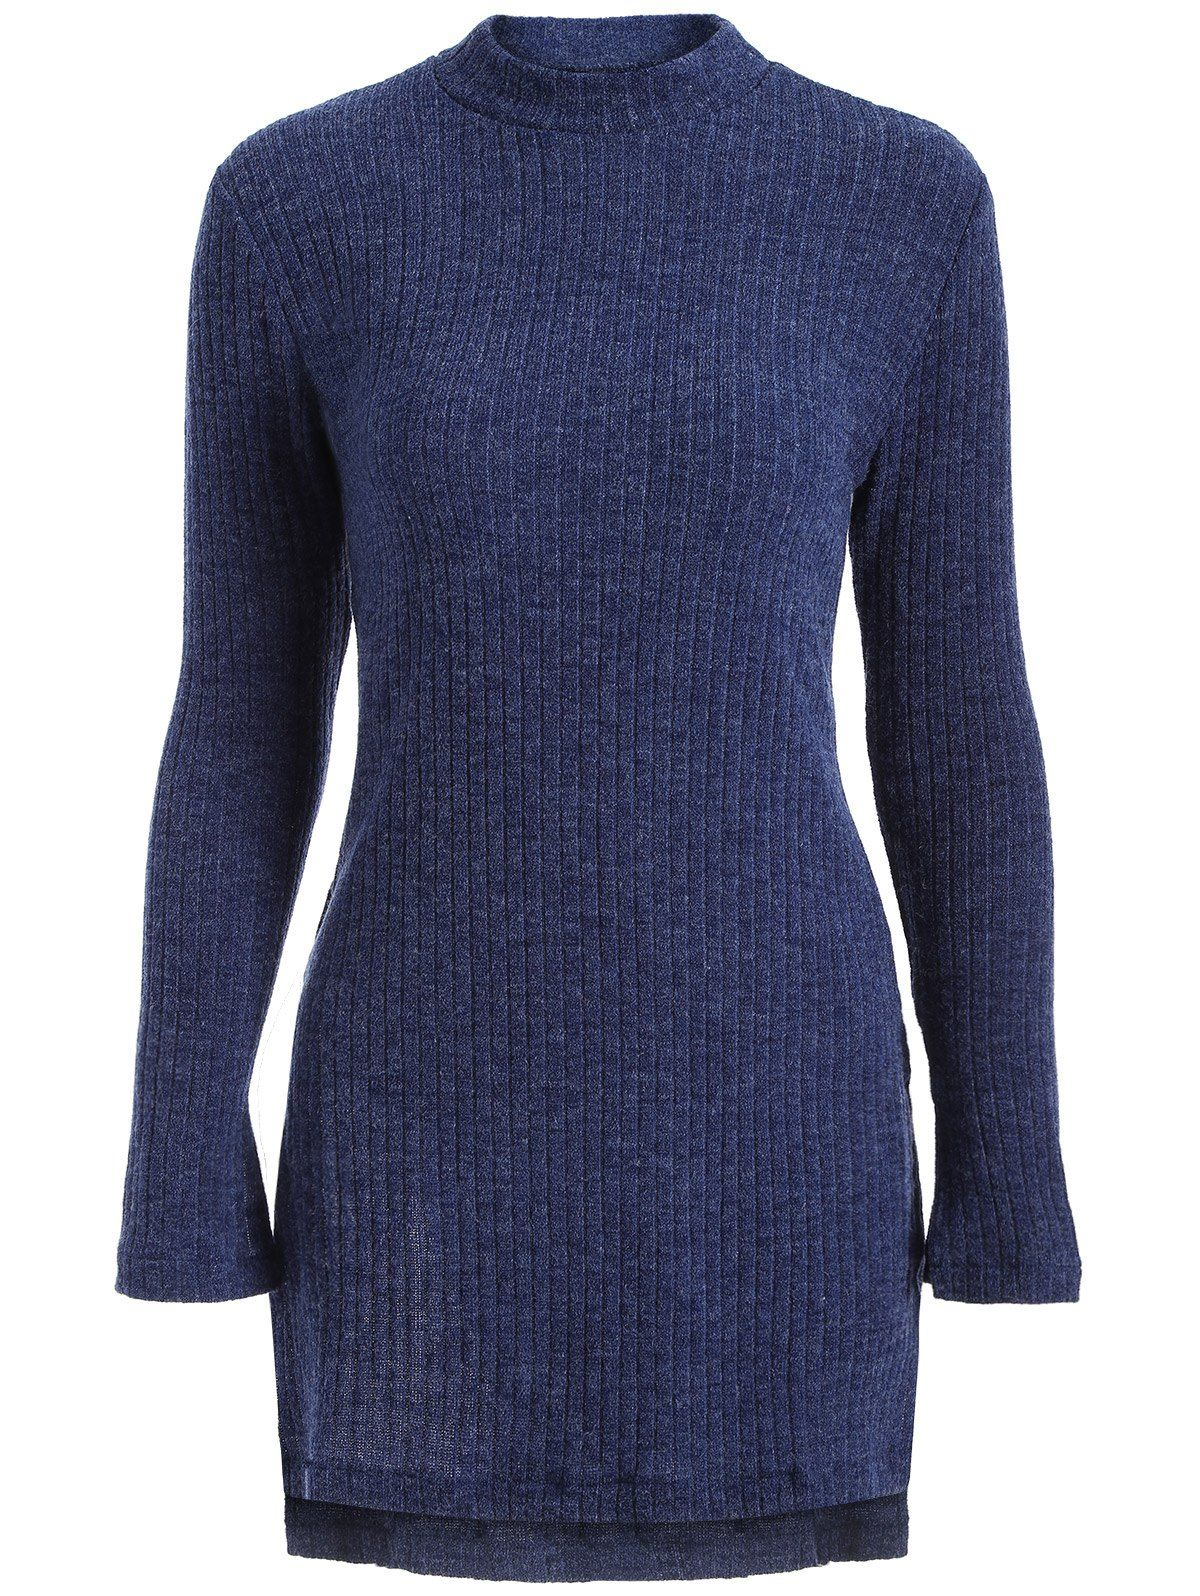 High Neck Side Slit Tunic Sweater - DEEP BLUE L